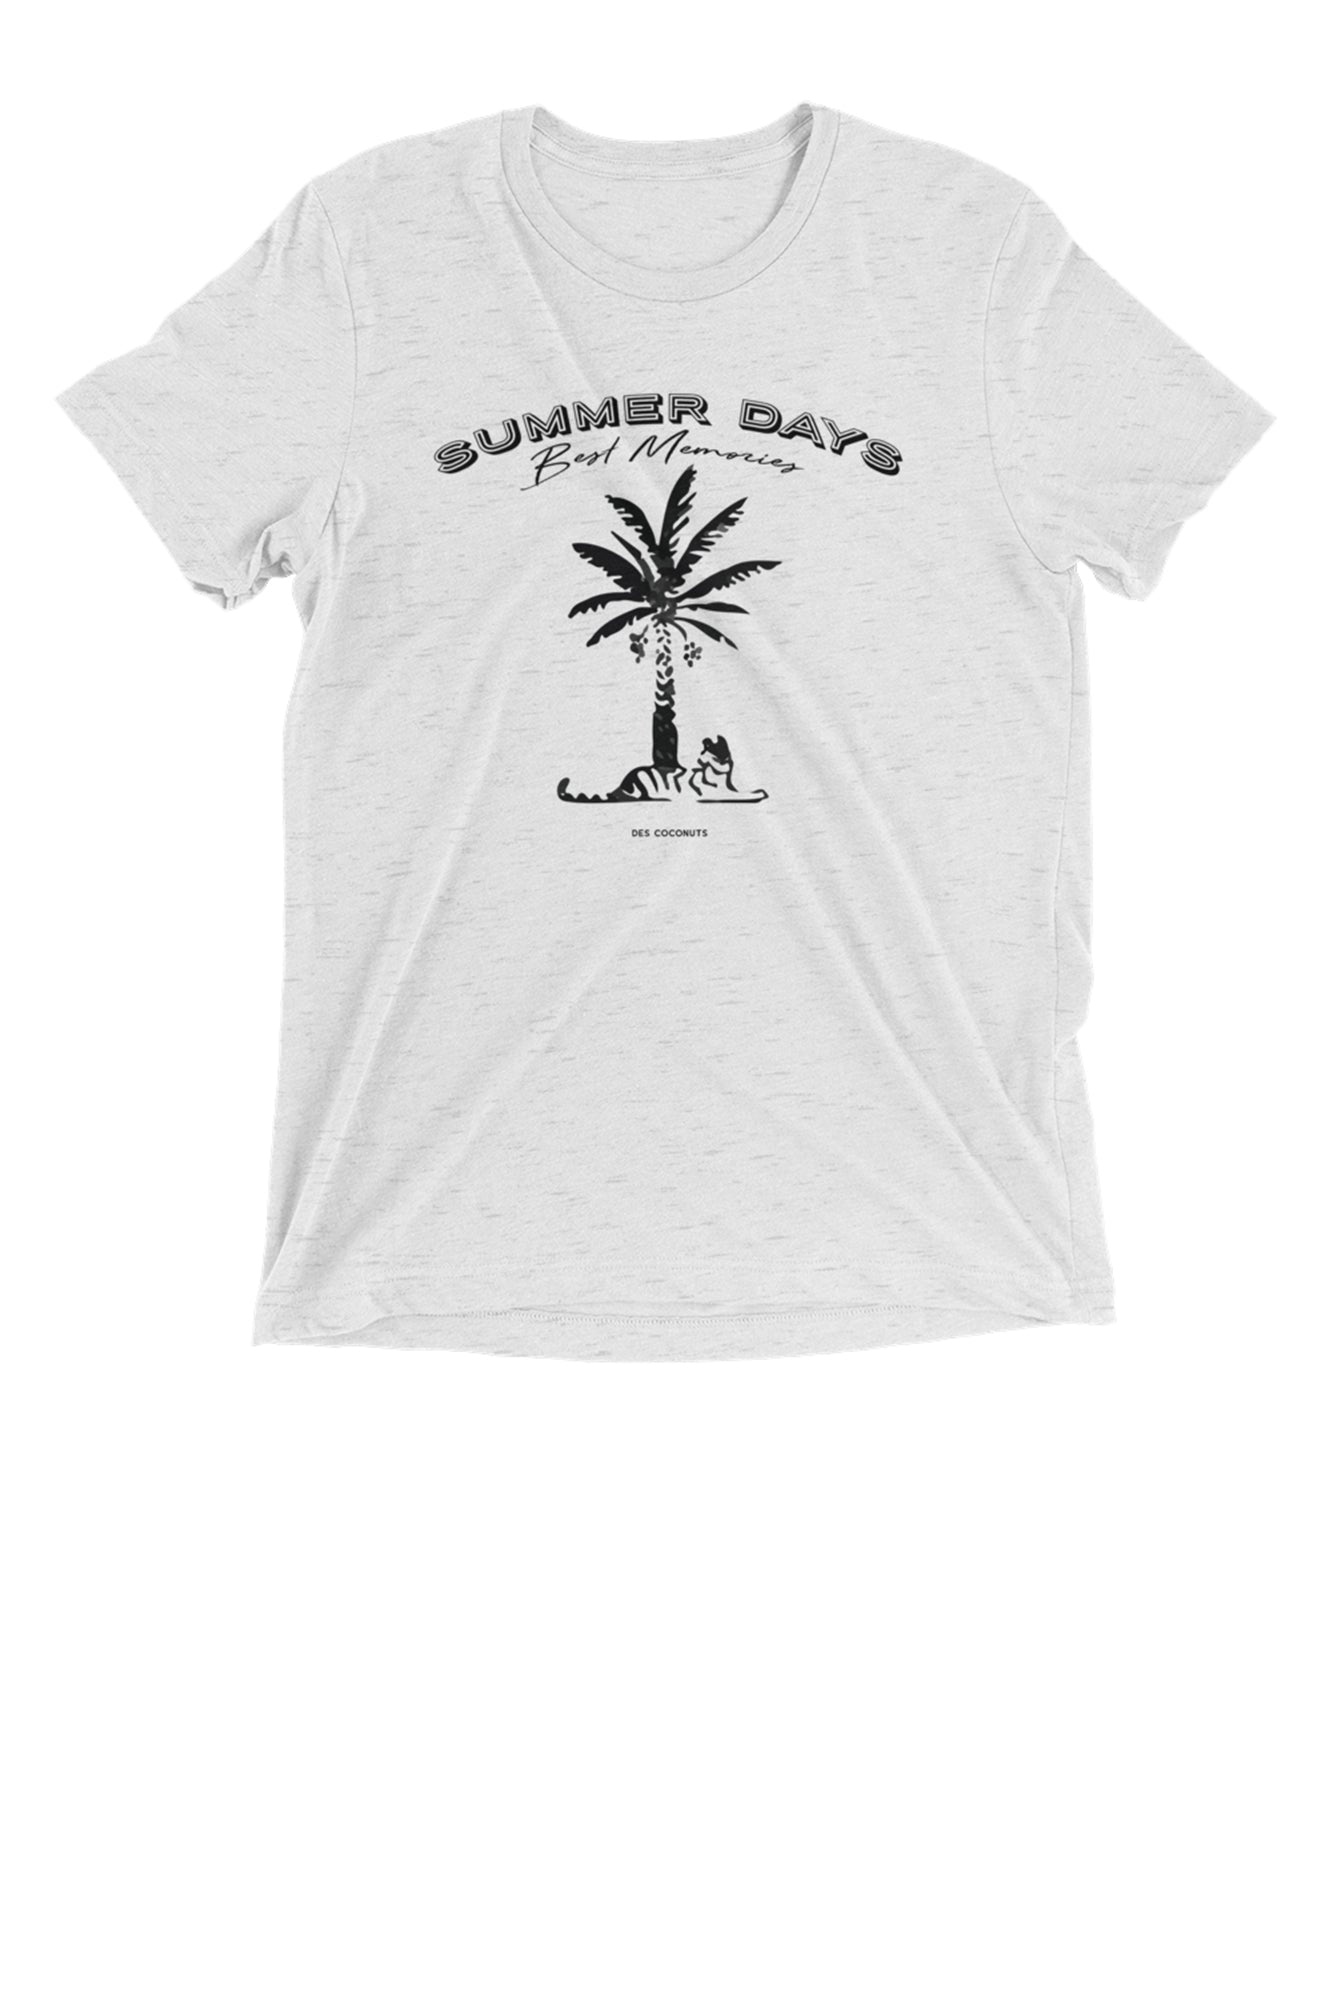 Summer Days t-shirt